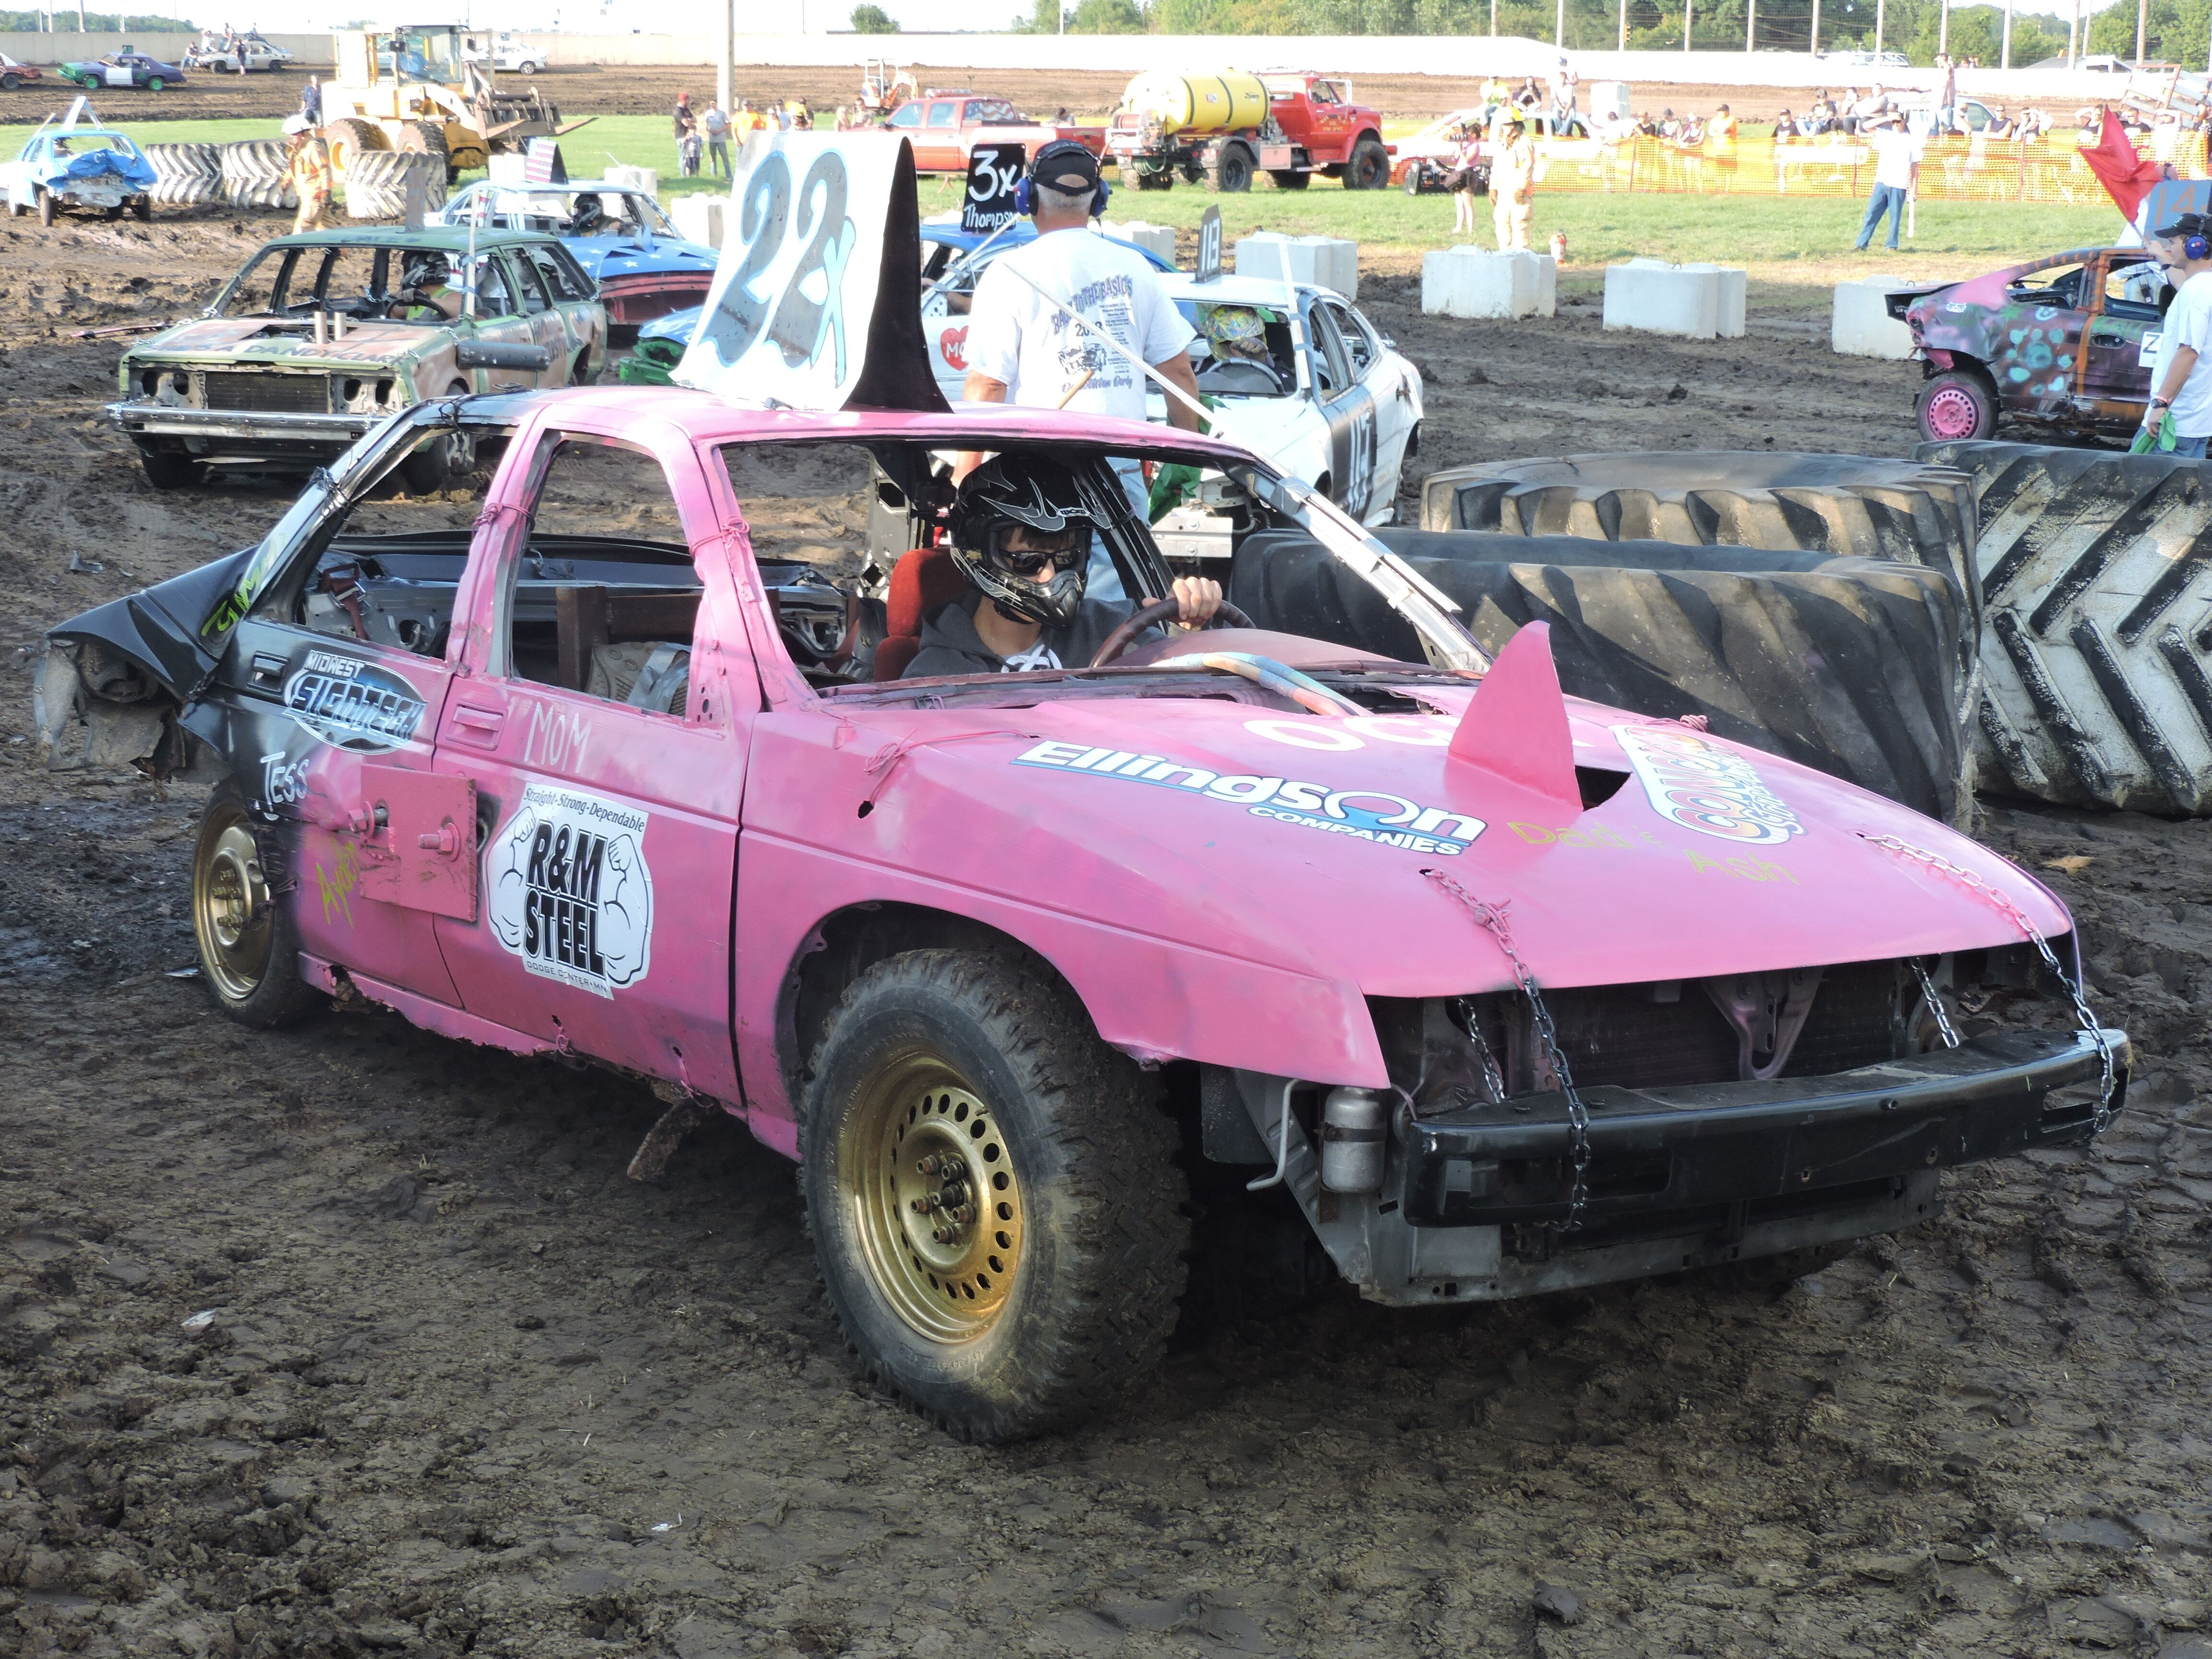 Demolition Derby Dodge County Free Fair